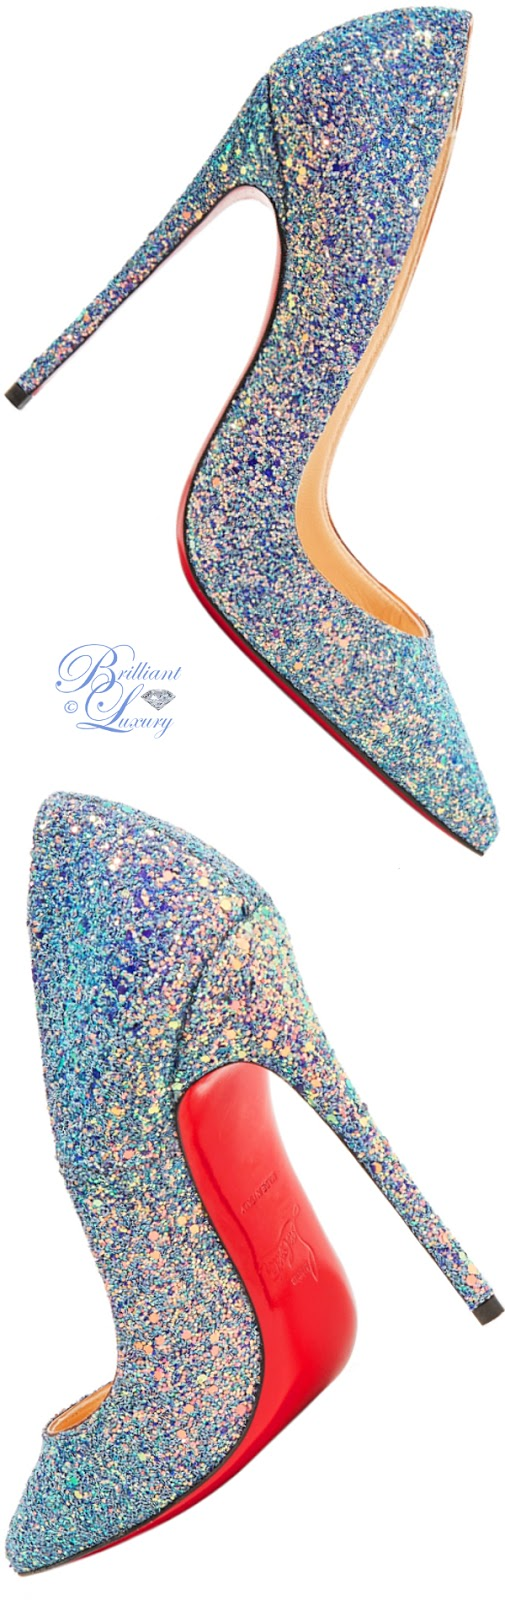 Brilliant Luxury ♦ Christian Louboutin So Kate Dragonfly glittered leather pumps